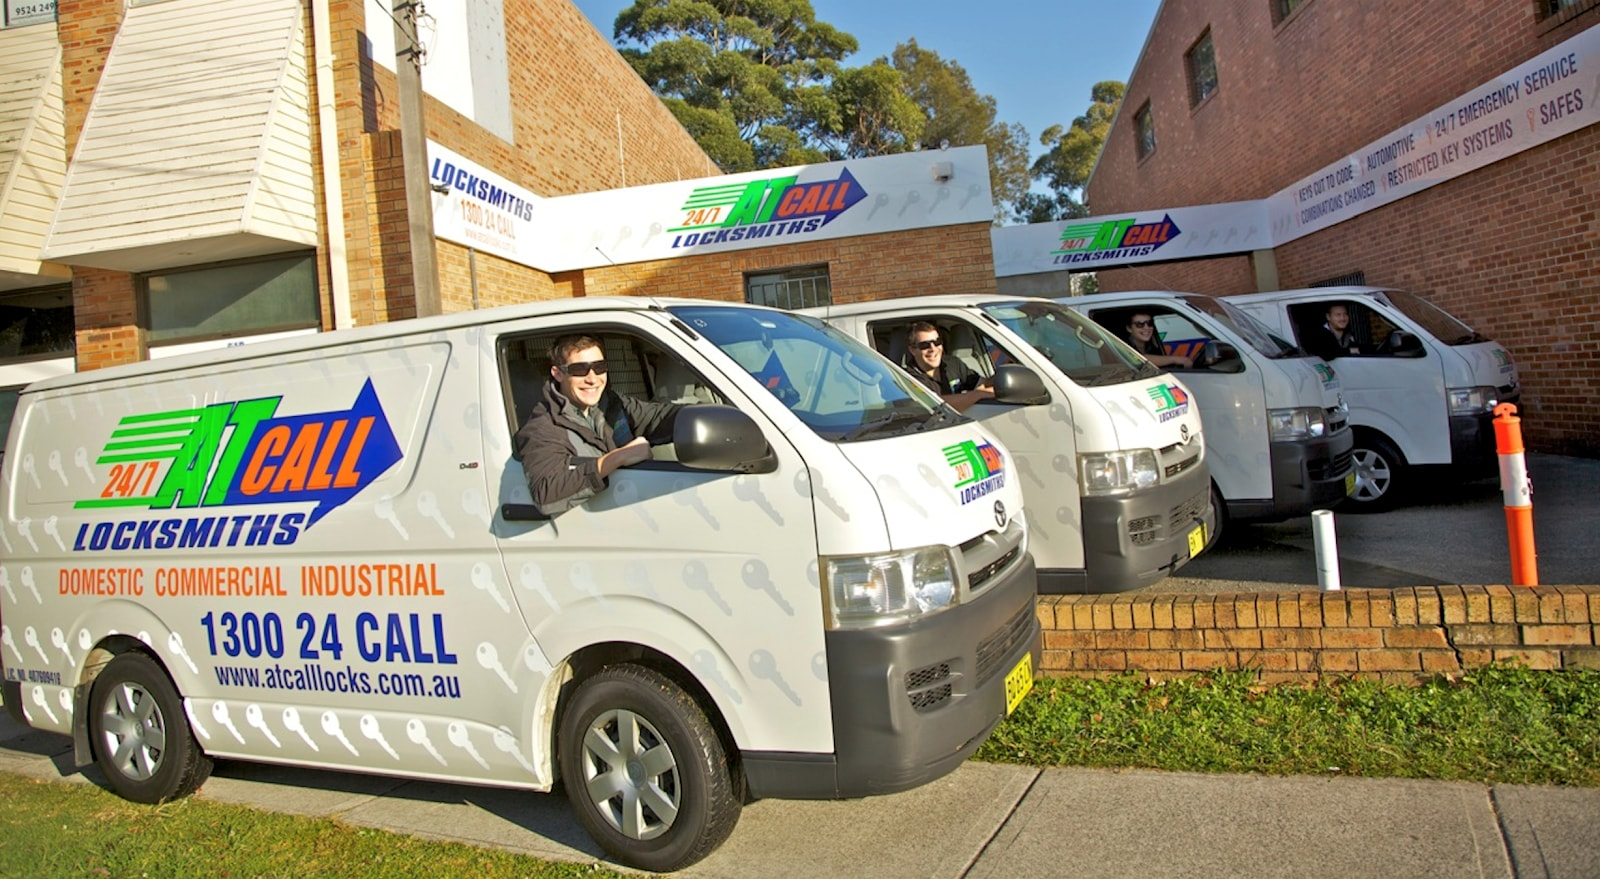 Locksmith Eastern Suburbs Sydney